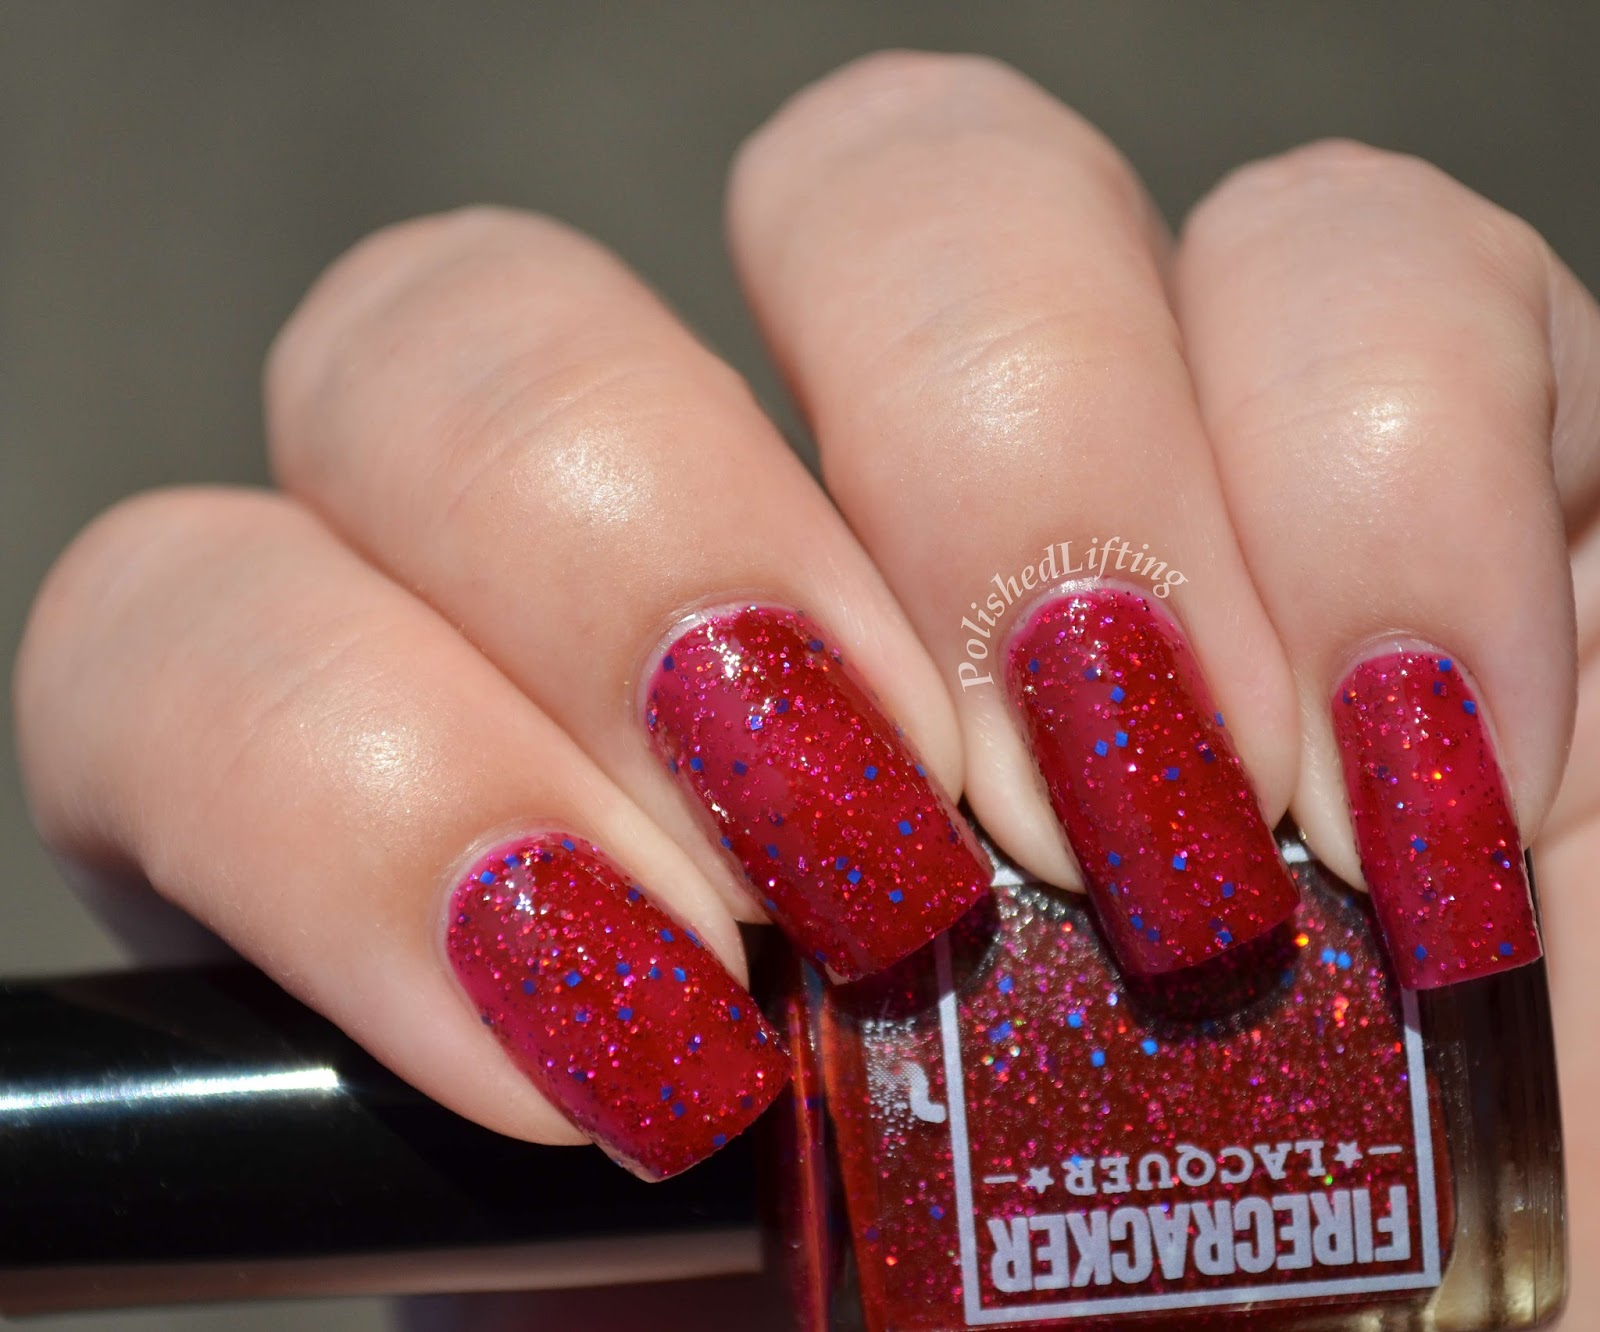 Firecracker Lacquer Type O Negative